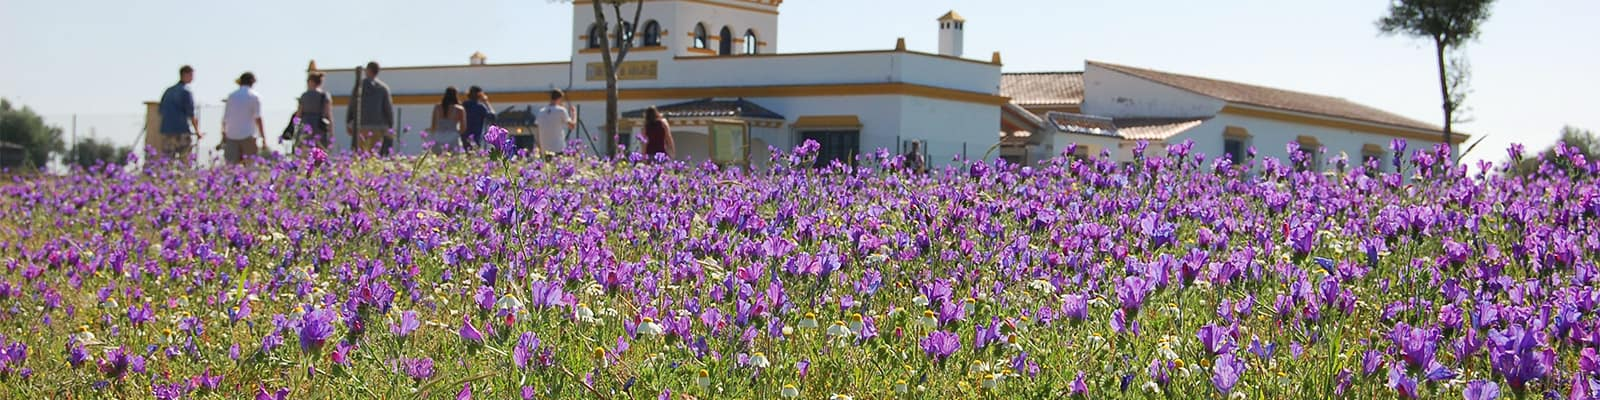 A Spanish villa surrounded by purple flowers